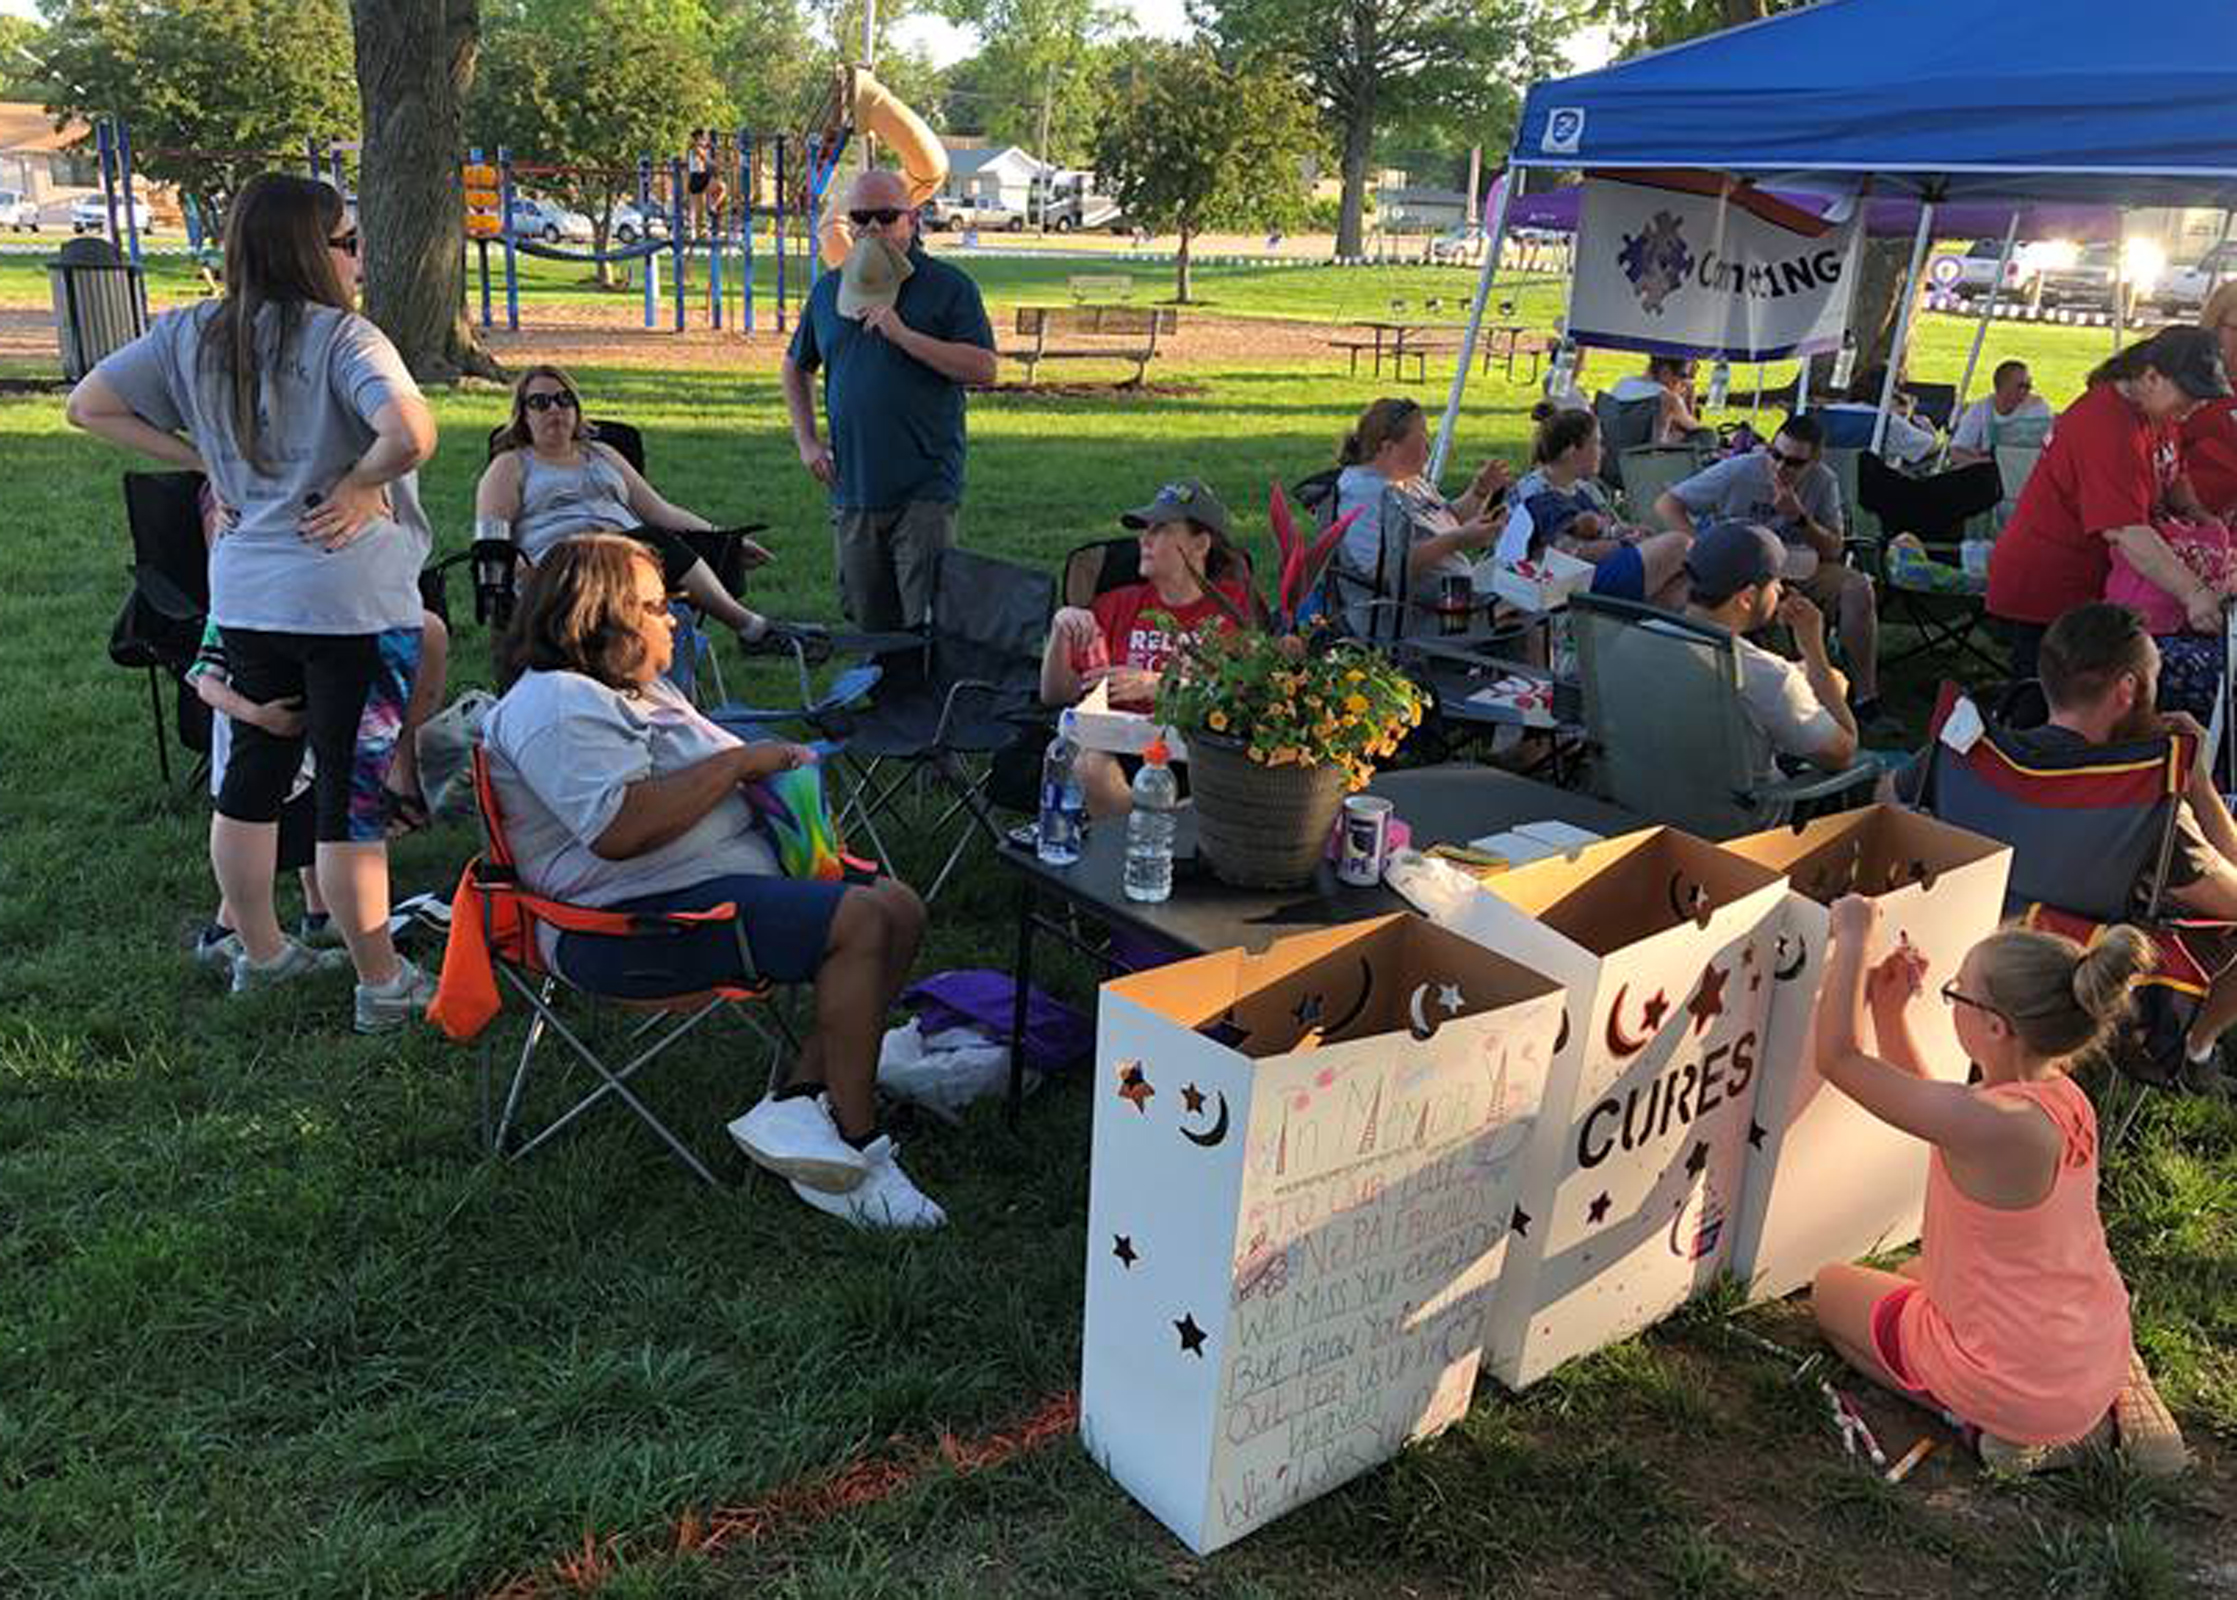 The Nebraska Paralegal Association team Legal Beagles raised $2,207 for the American Cancer Society at the Sarpy County Relay for Life on June 8, 2019, held at Papillion's City Park. (Courtesy Amber Roberts)